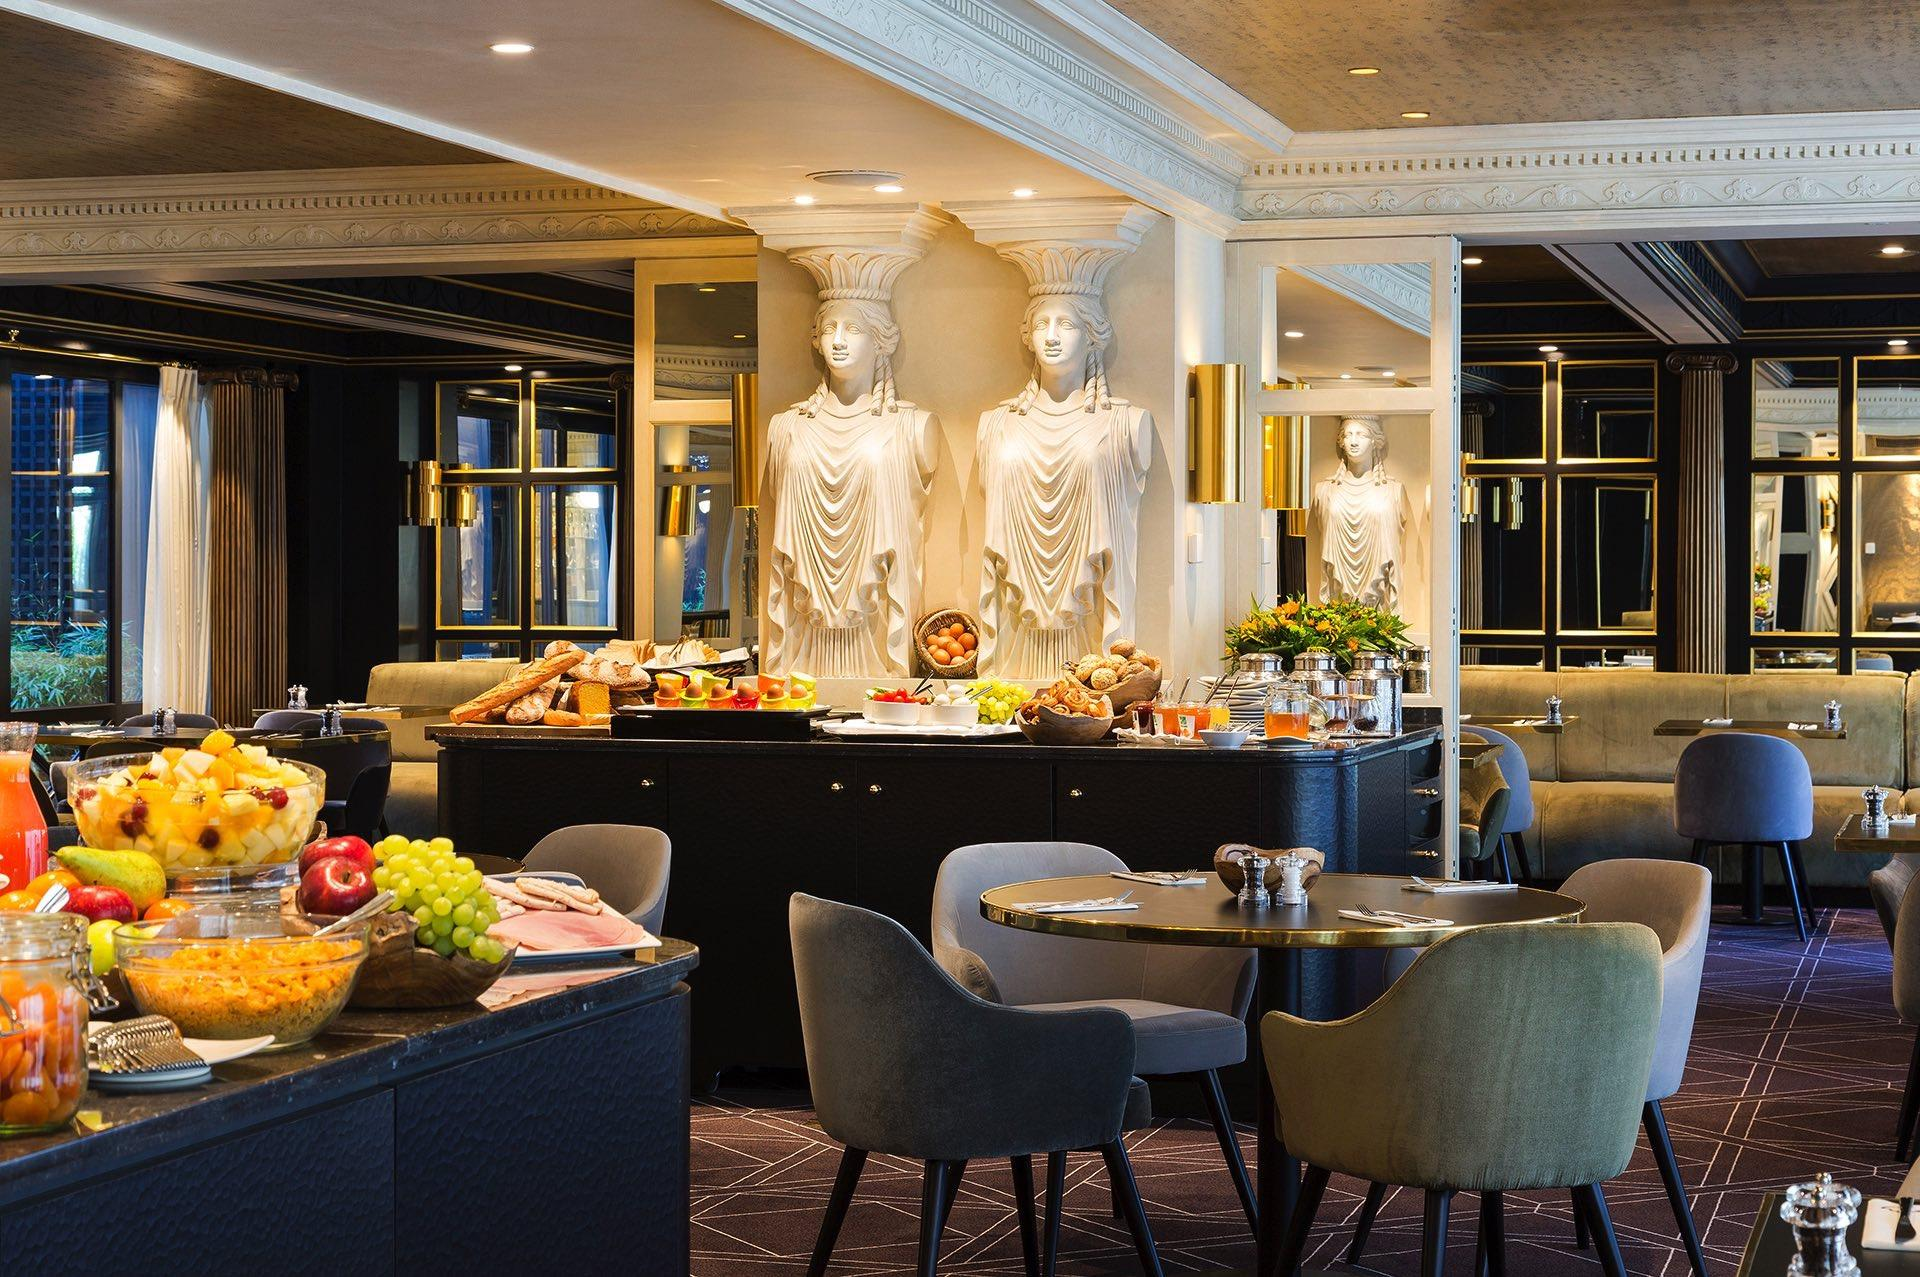 The Avenue ontbijtbuffet in Hotel Barsey by Warwick